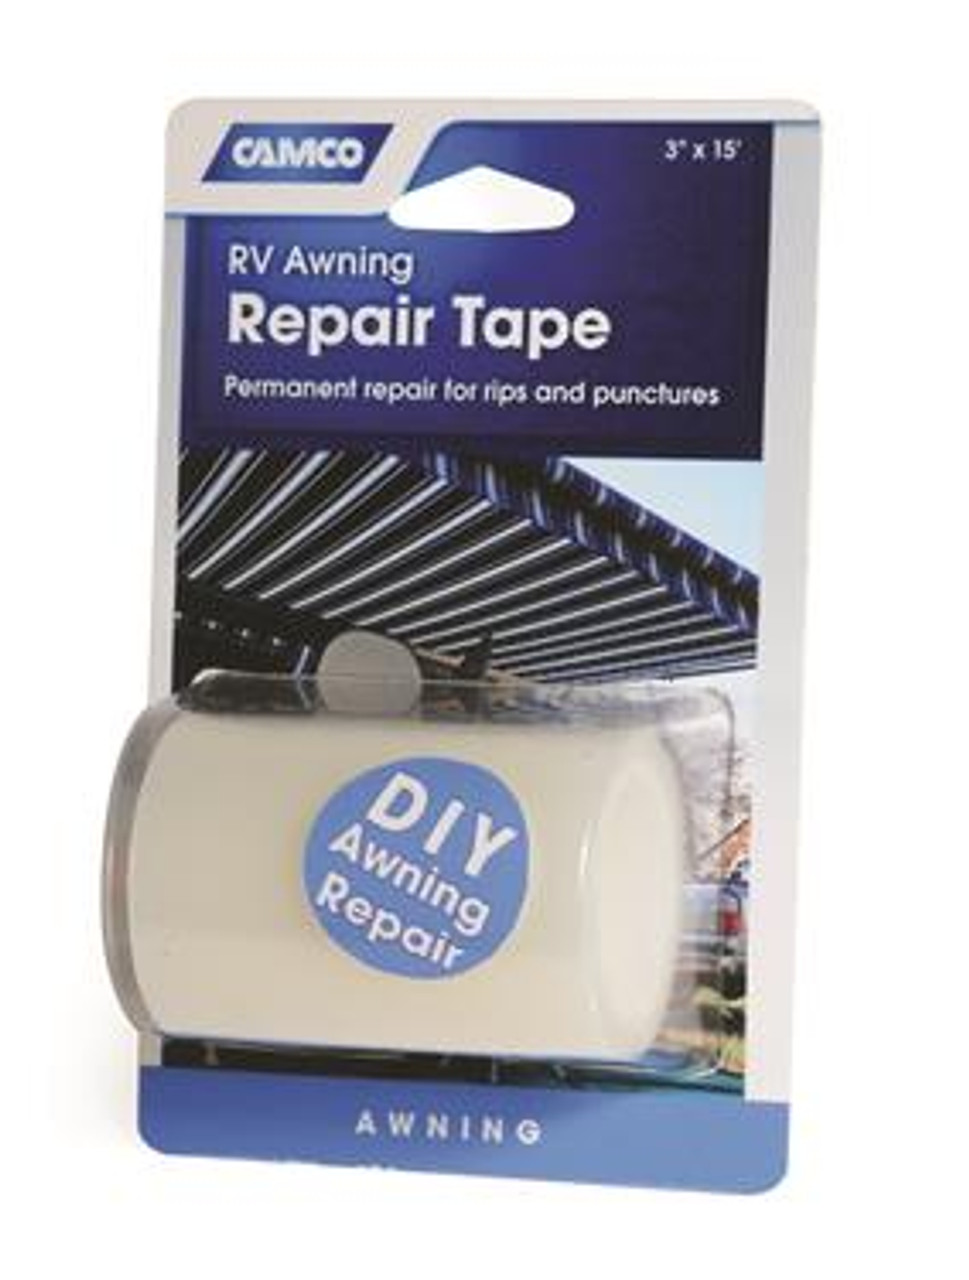 Camco Awning Repair Tape 3 Quot X 15